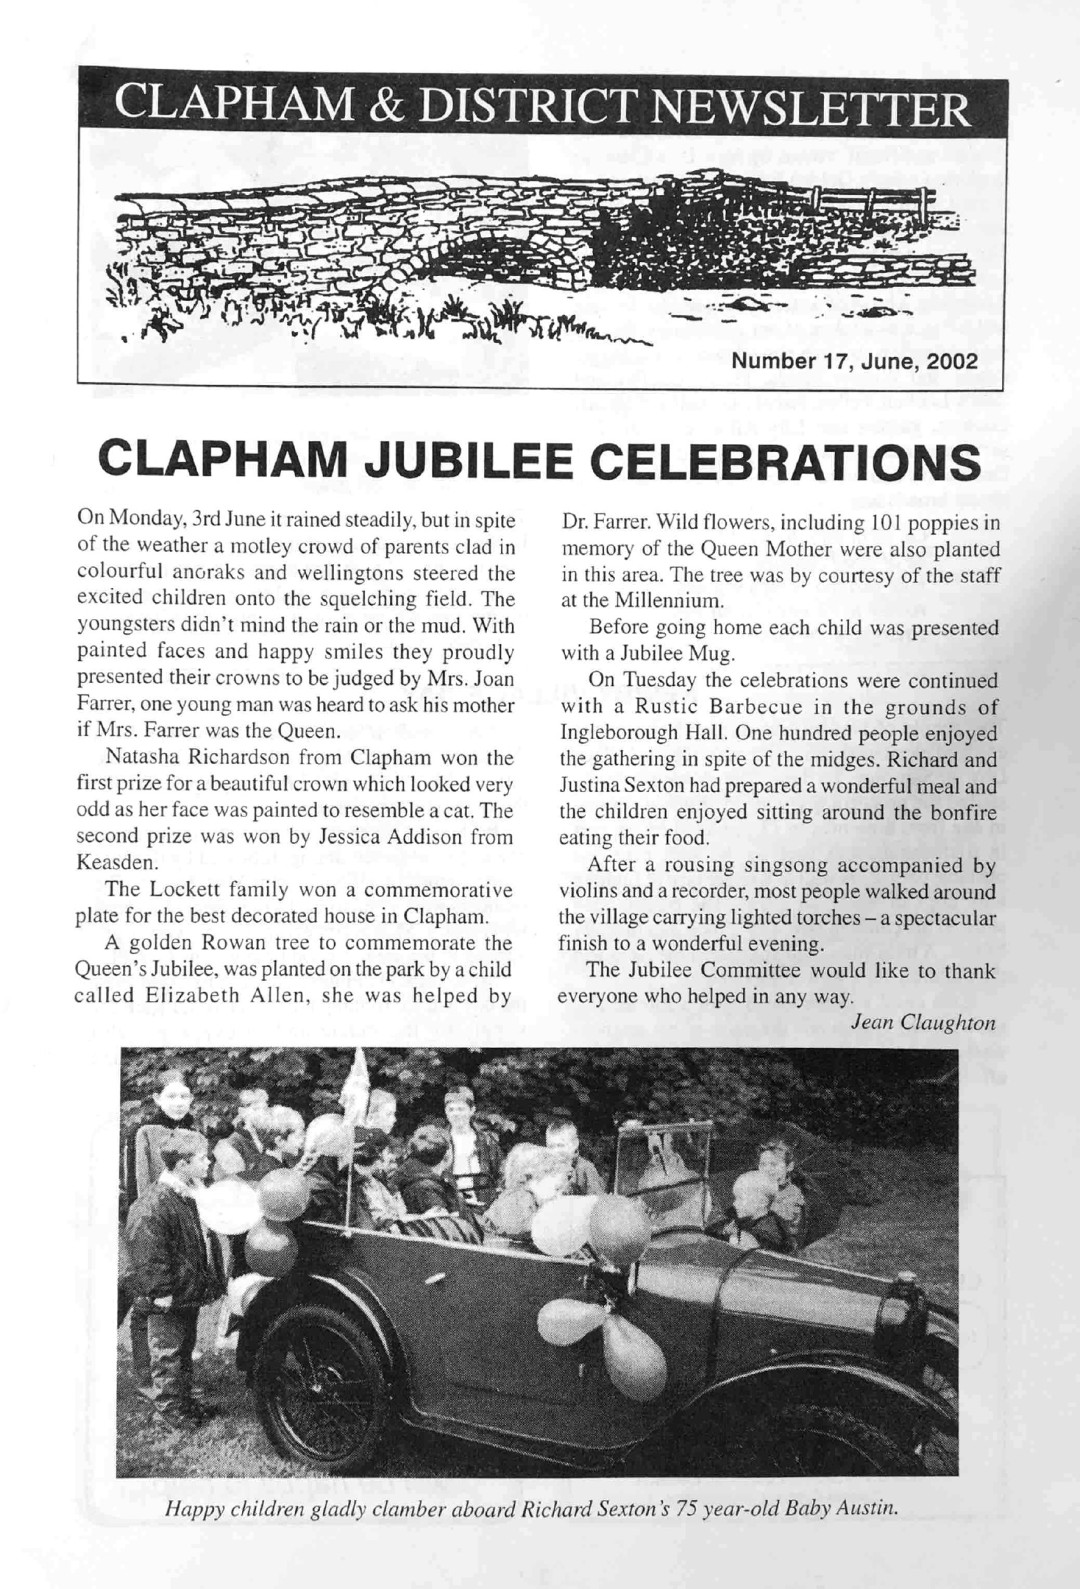 Clapham_Newsletter_No17_June_2002-1